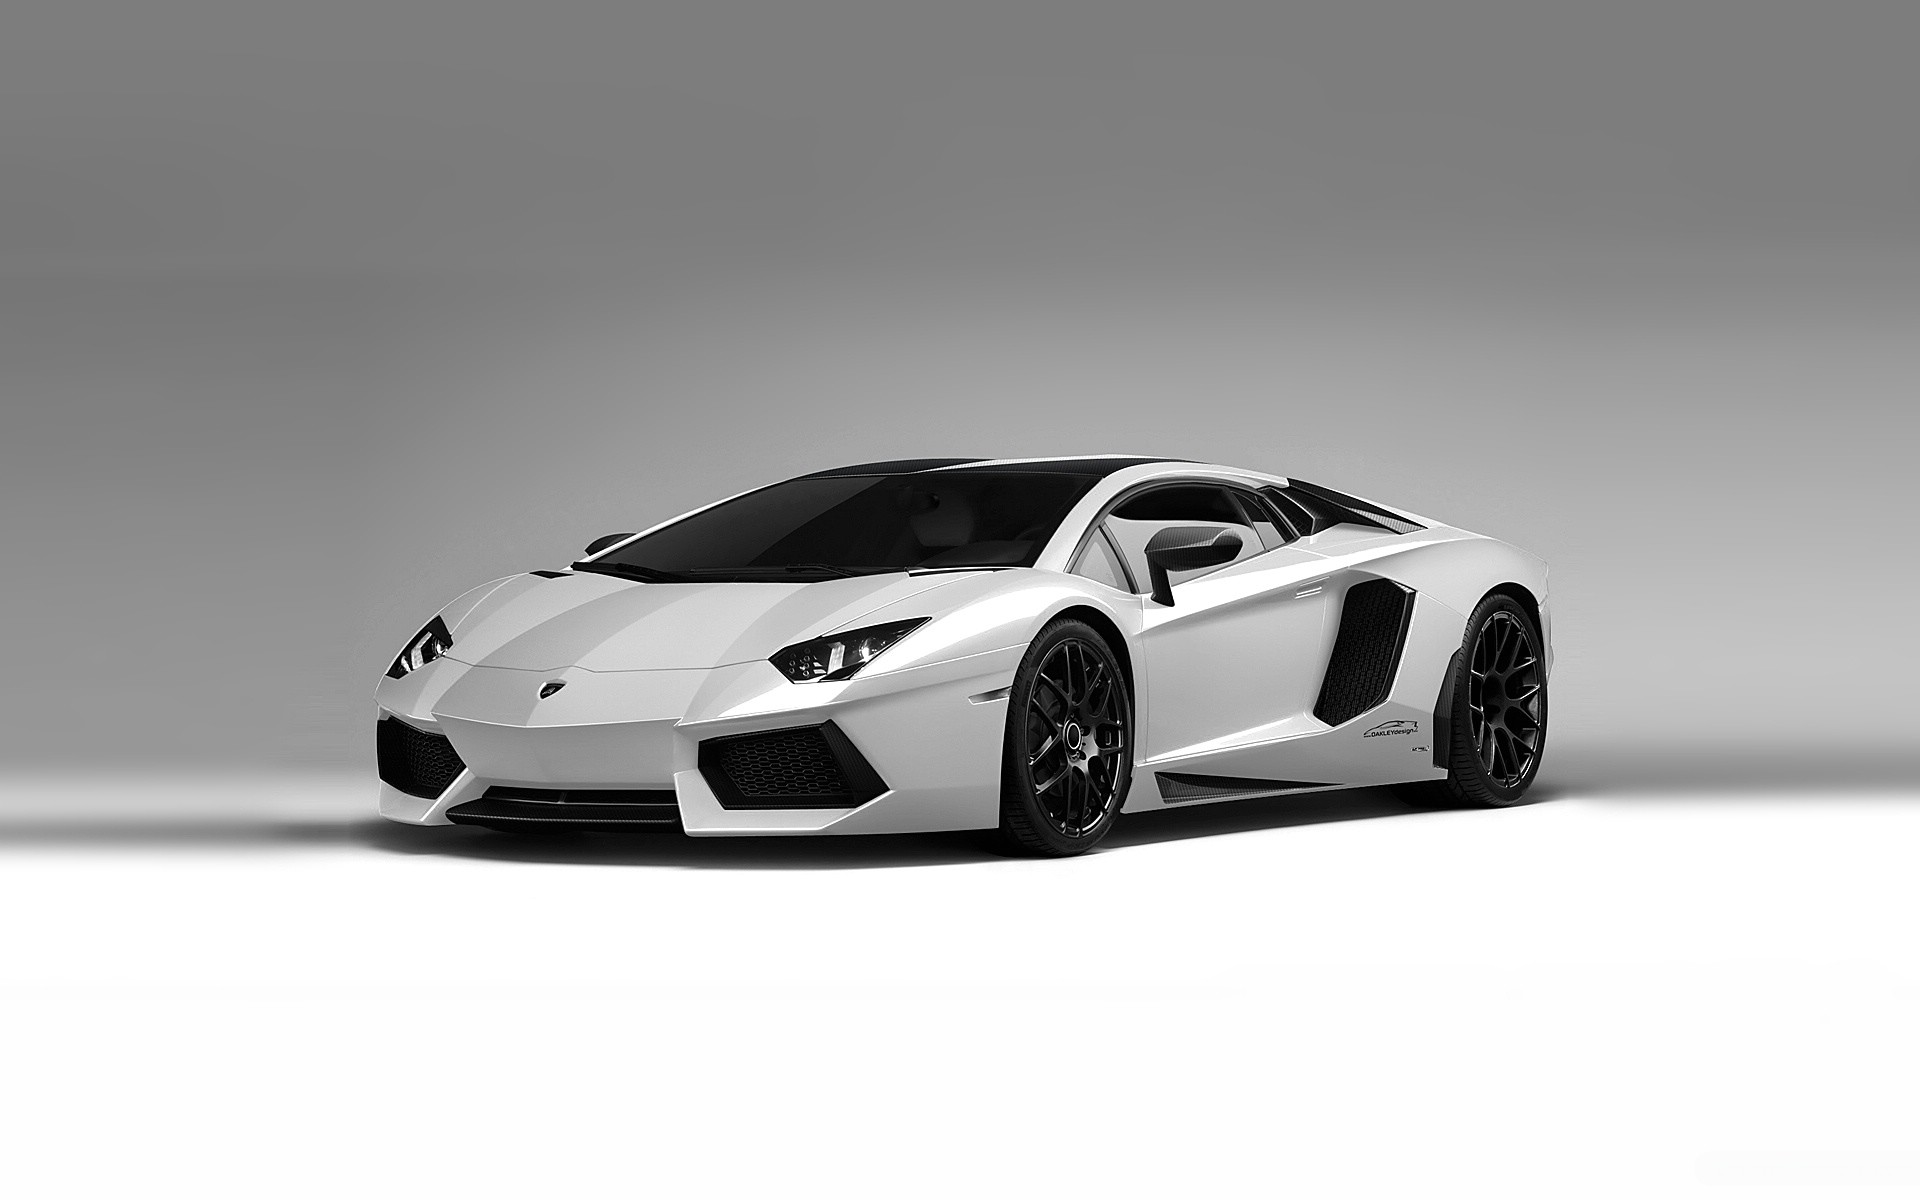 Lamborghini Aventador White Wallpaper HD Car Wallpapers 1920x1200